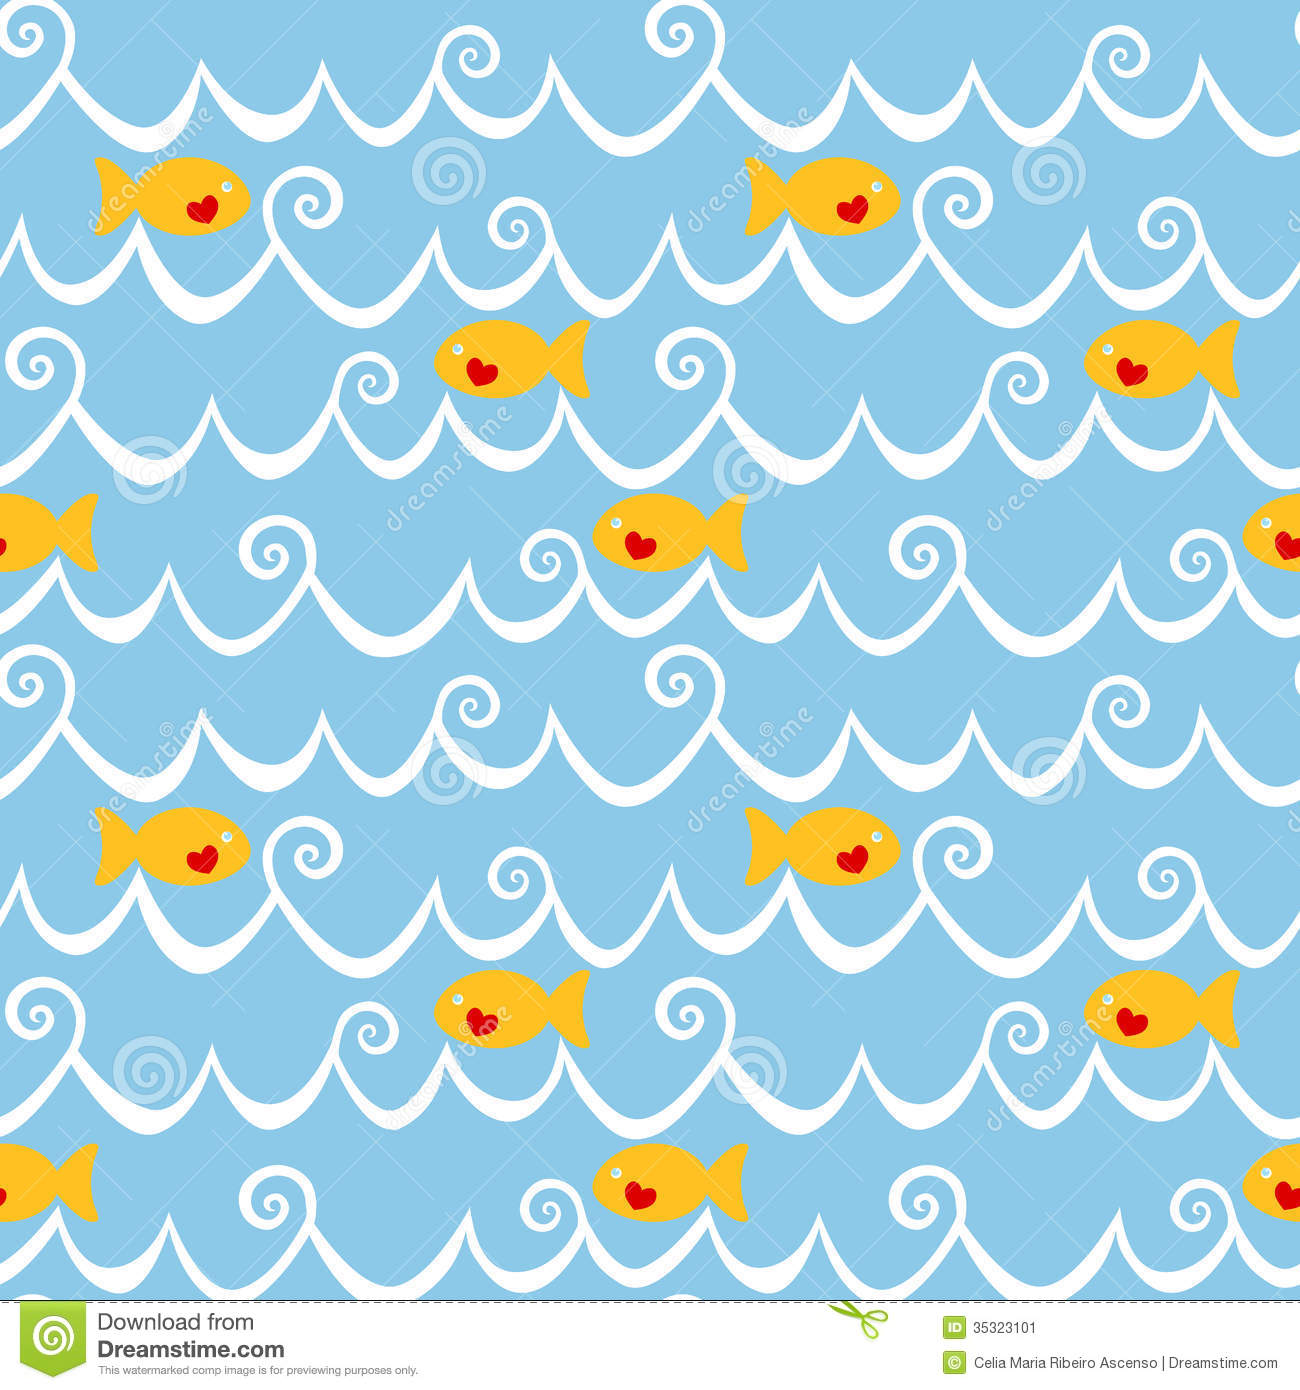 Cartoon Waves Border Fishes and waves seamless